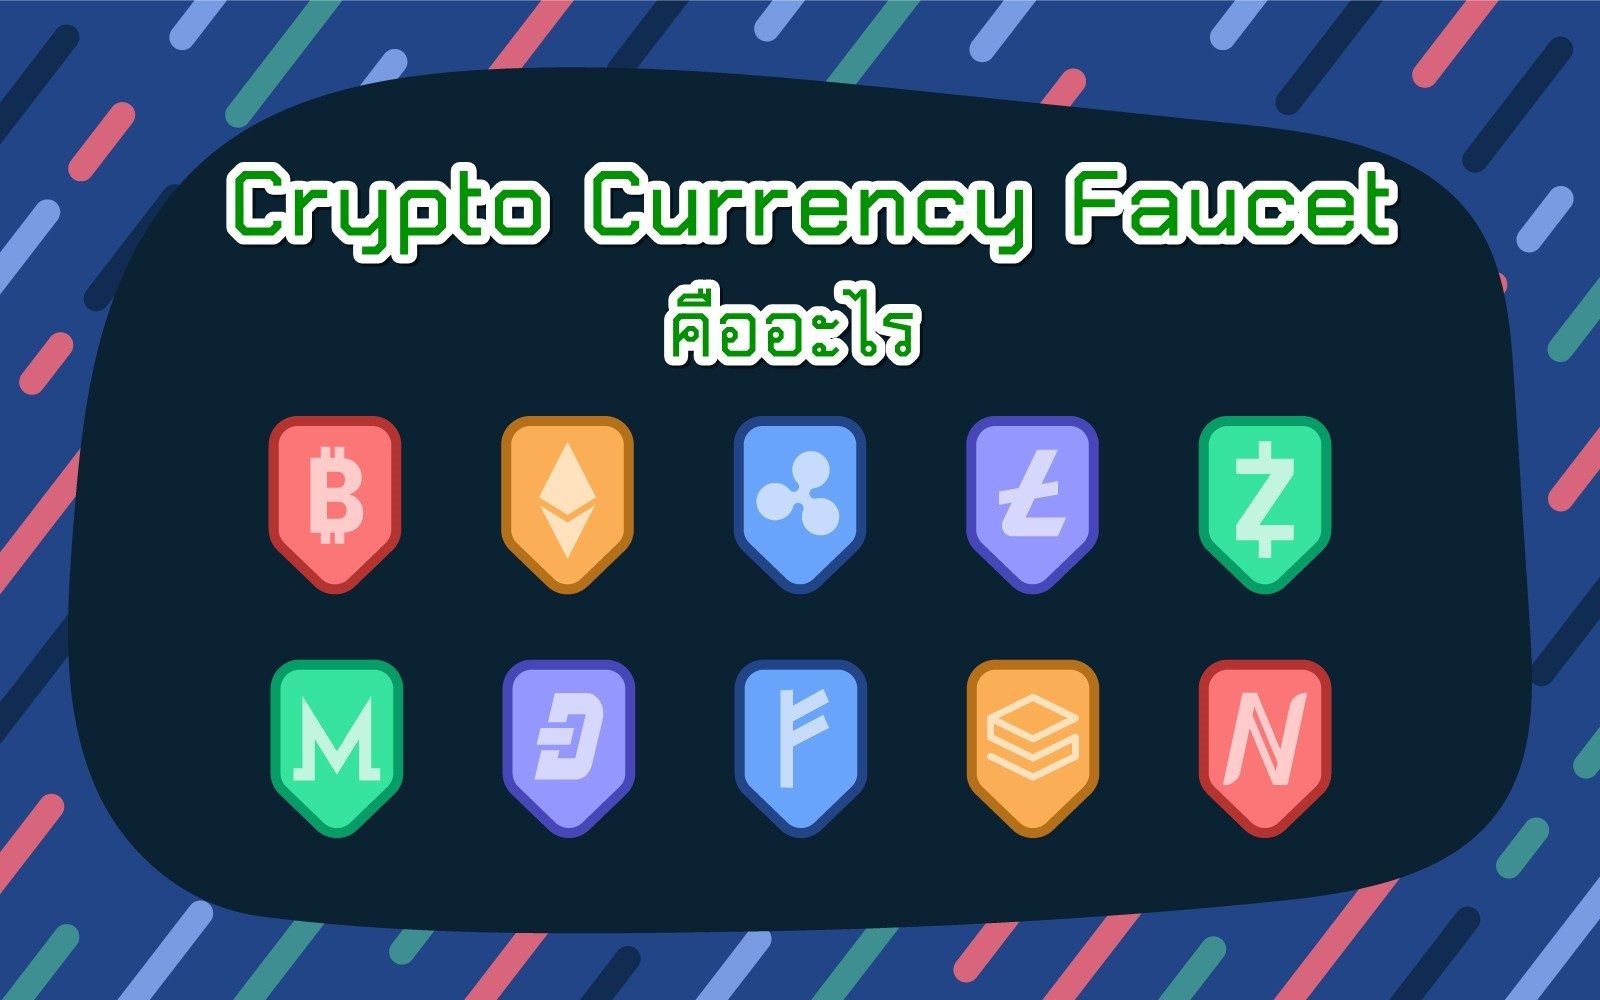 Crypto Currency Faucet คืออะไร?